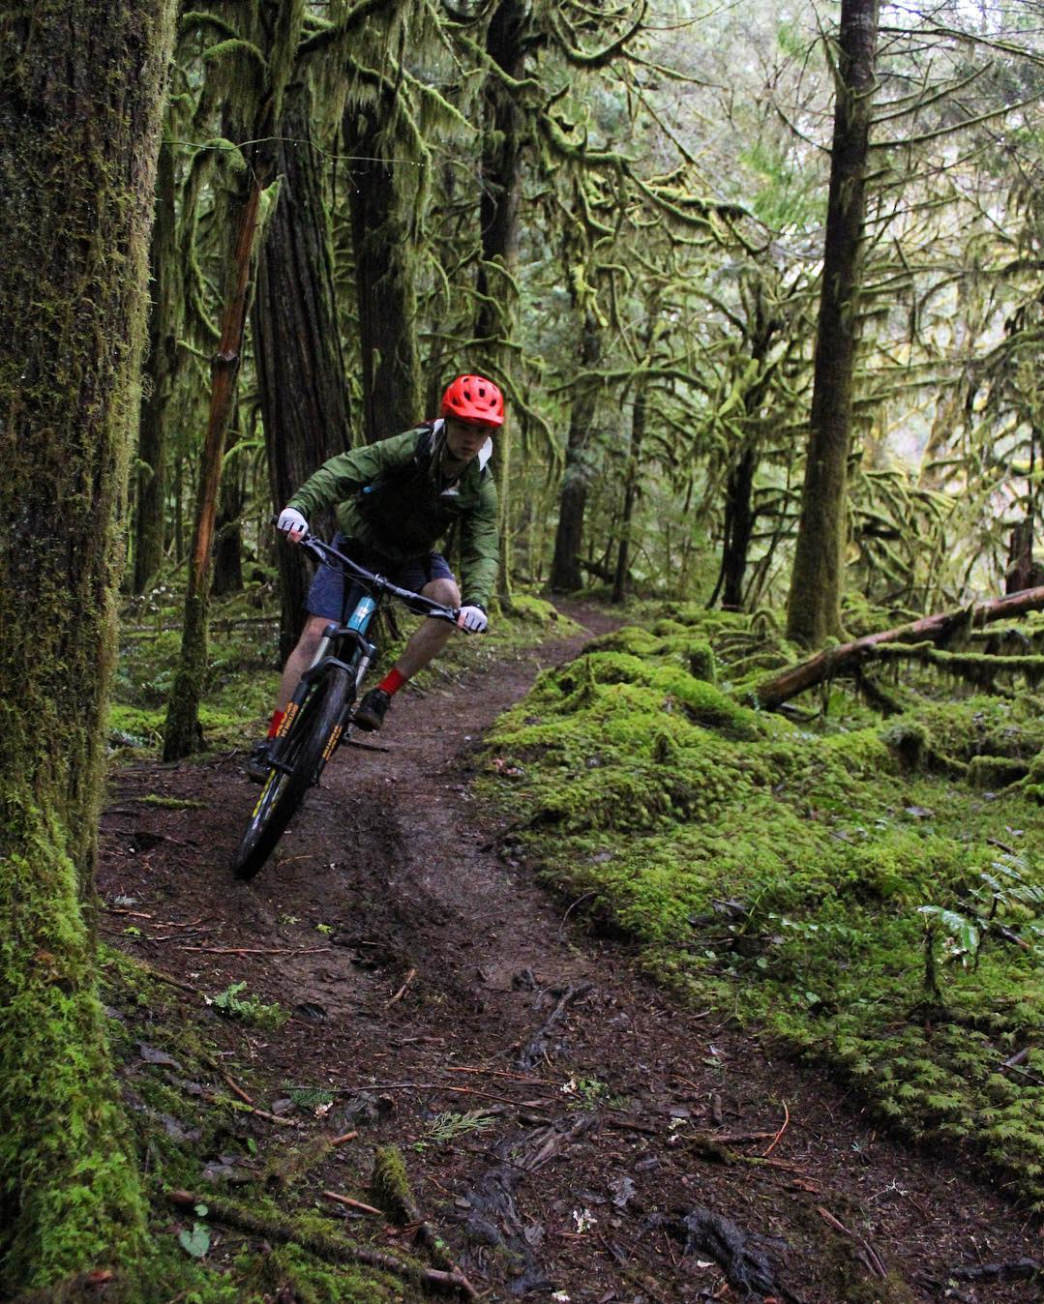 b0d7db5eed7 The McKenzie River Trail has everything you'll love in a long Oregon bike  trail